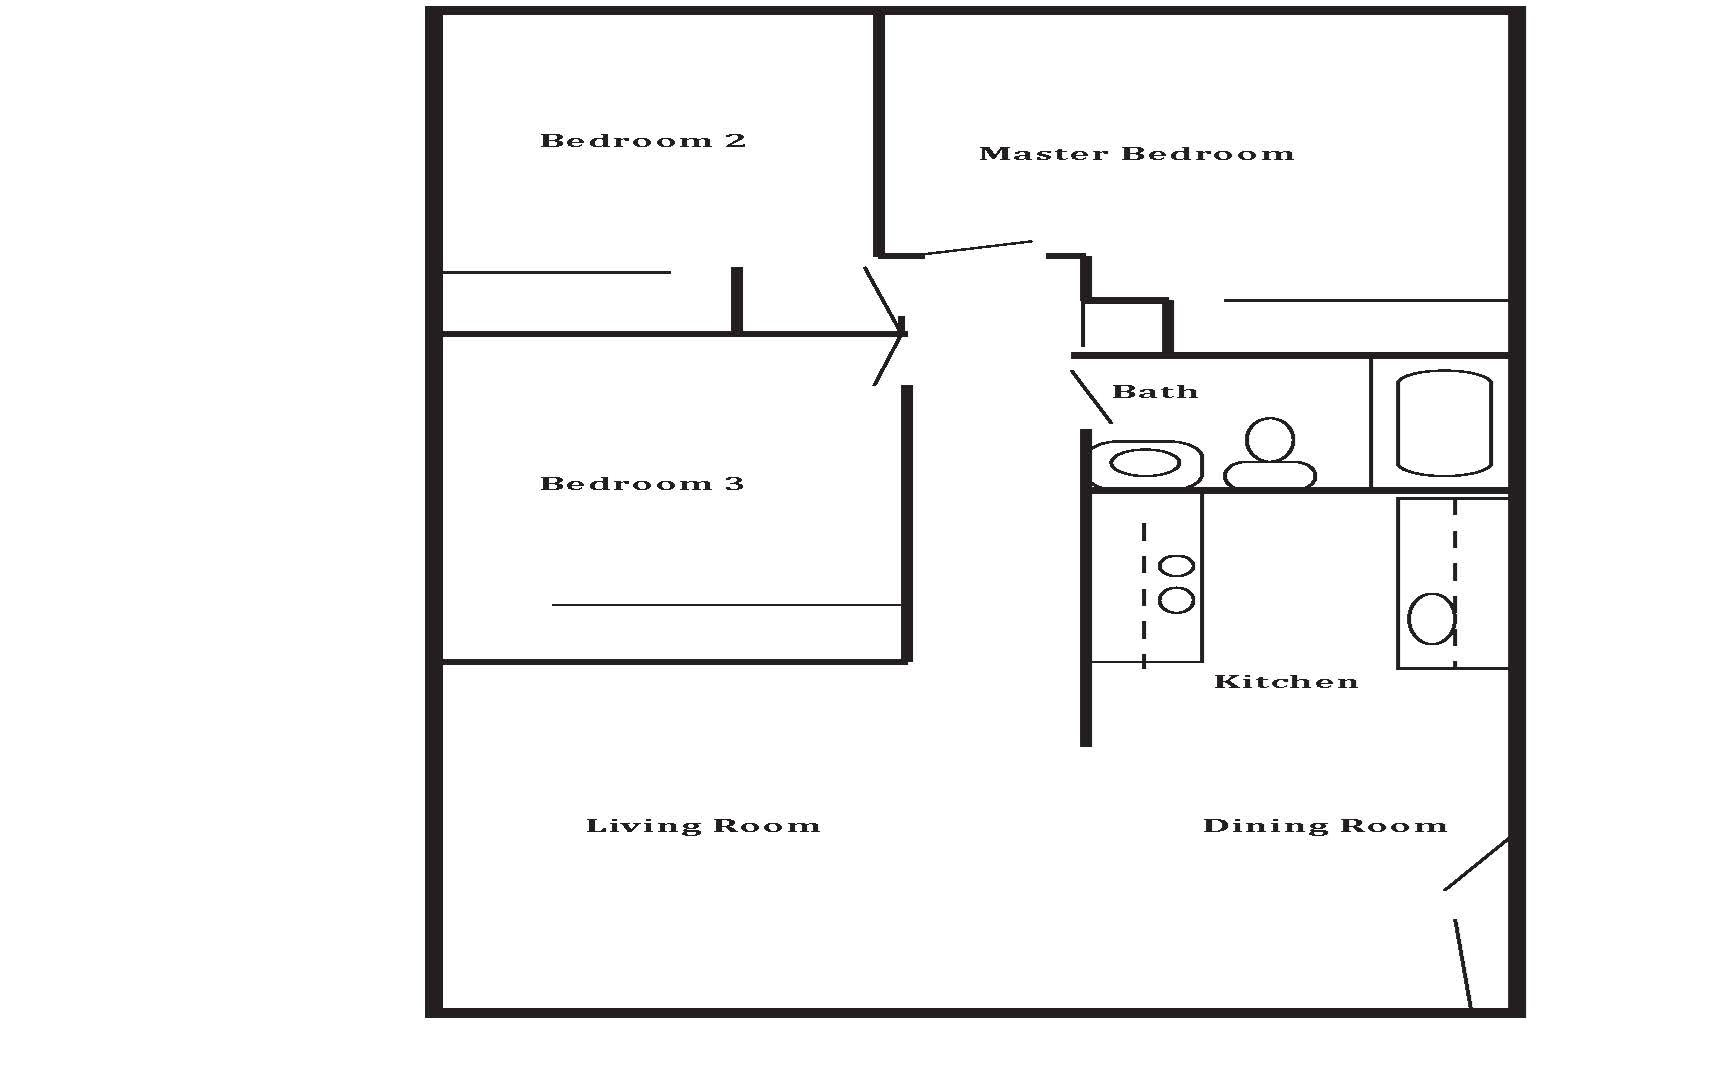 3 Bedroom 1 Bath Floor Plan 4